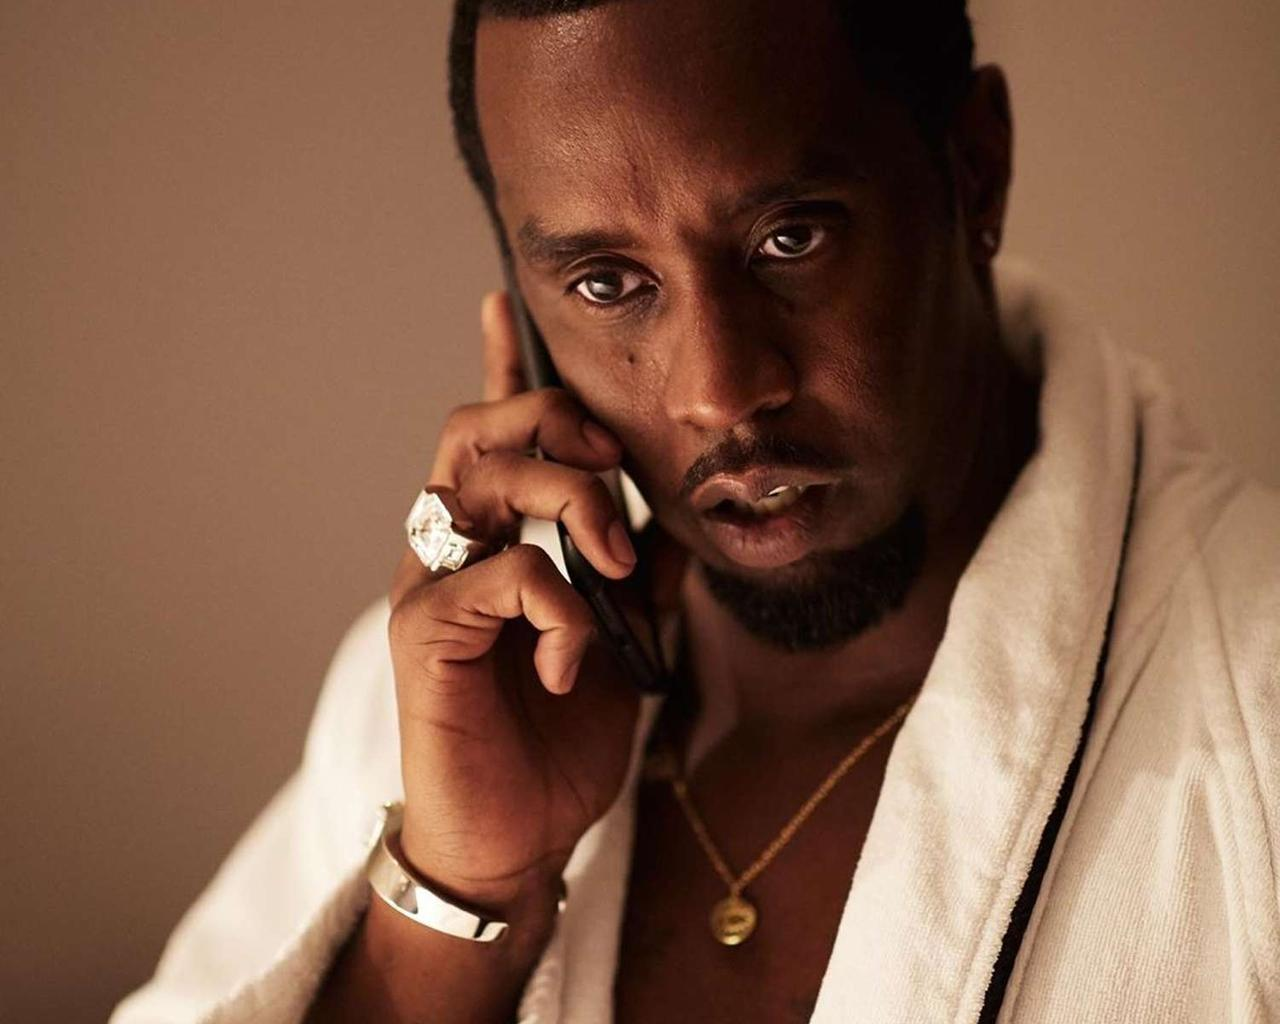 """'Grammy's Awards Don't Respect Hip-Hop and Black Music,' Sean """"Diddy"""" Combs Says — Does He Have a Point?"""